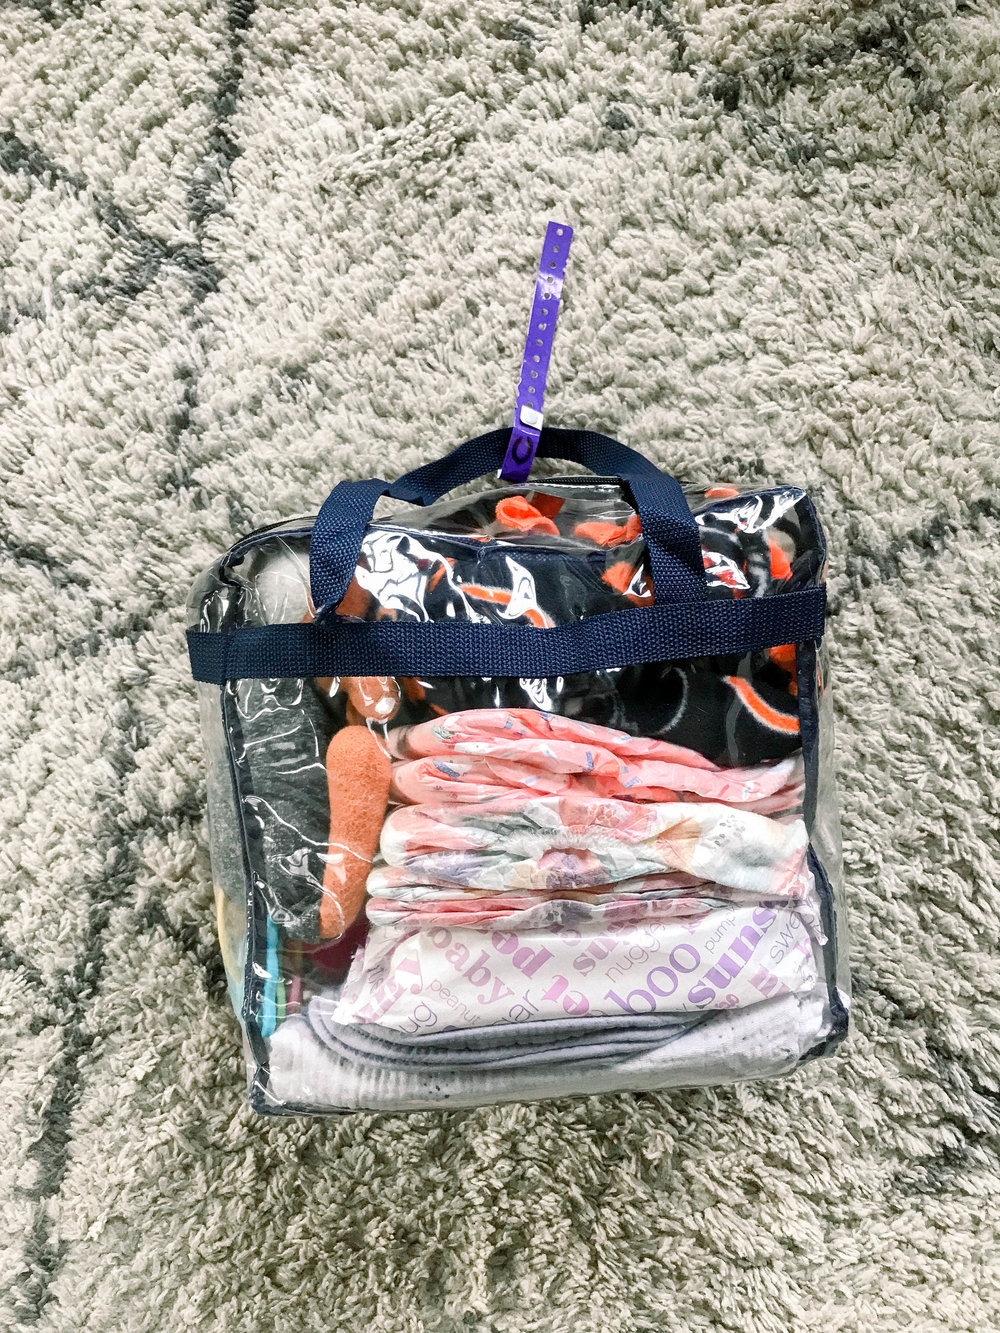 All Clear Bag, what to pack